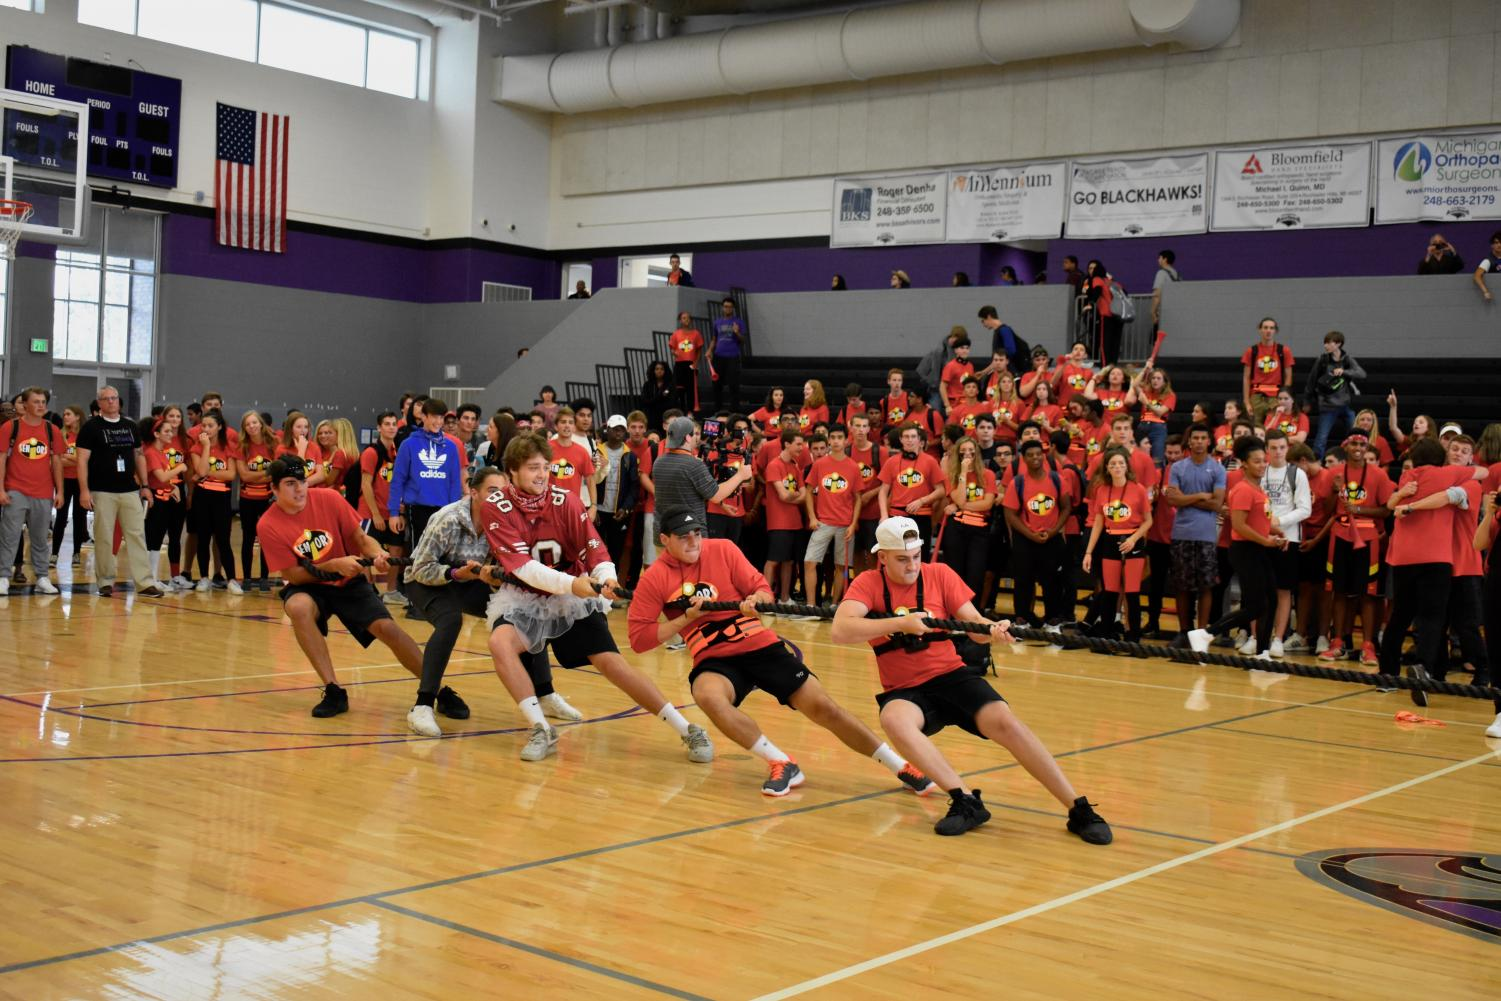 Seniors participate in tug of war, one of the events of the Games.